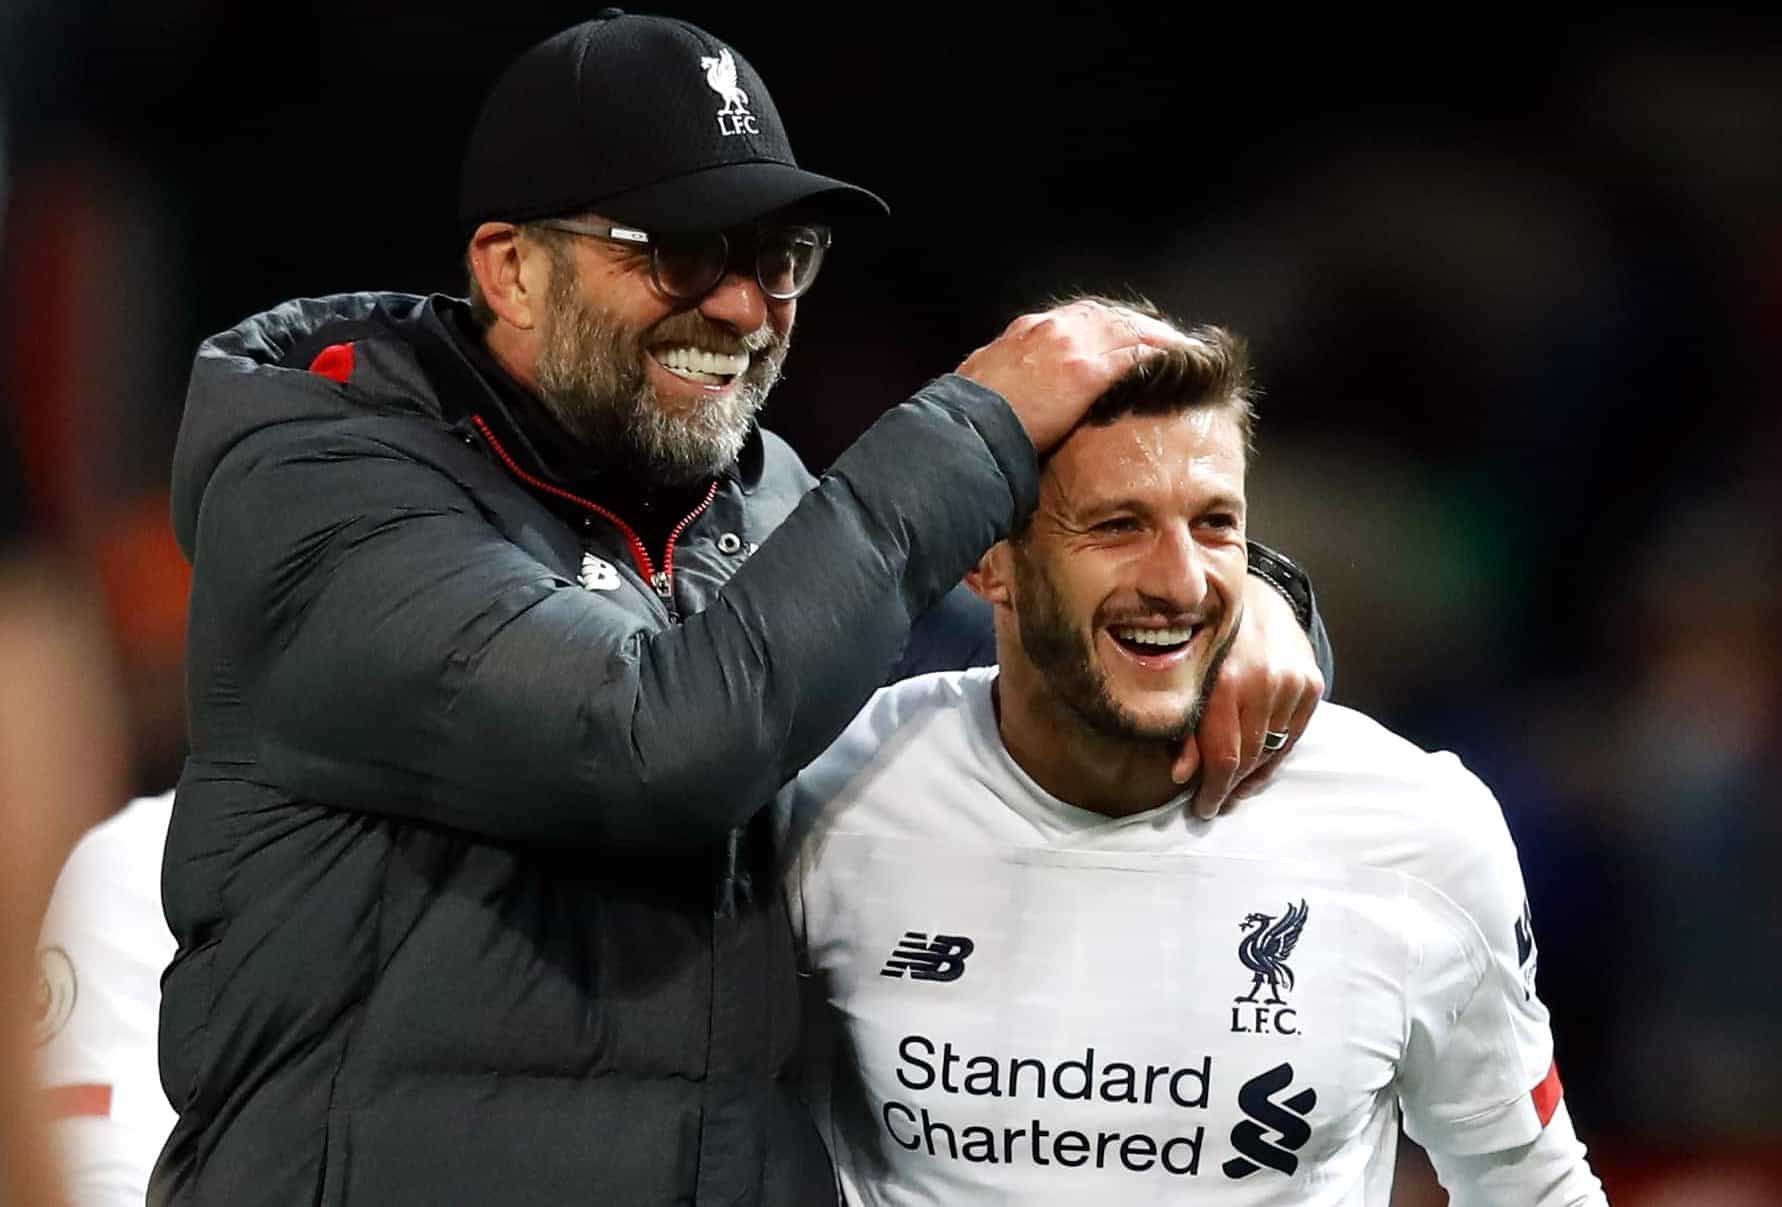 Liverpool manager Jurgen Klopp (left) celebrates with Adam Lallana after the Premier League match at Old Trafford, Manchester. (PA Media)